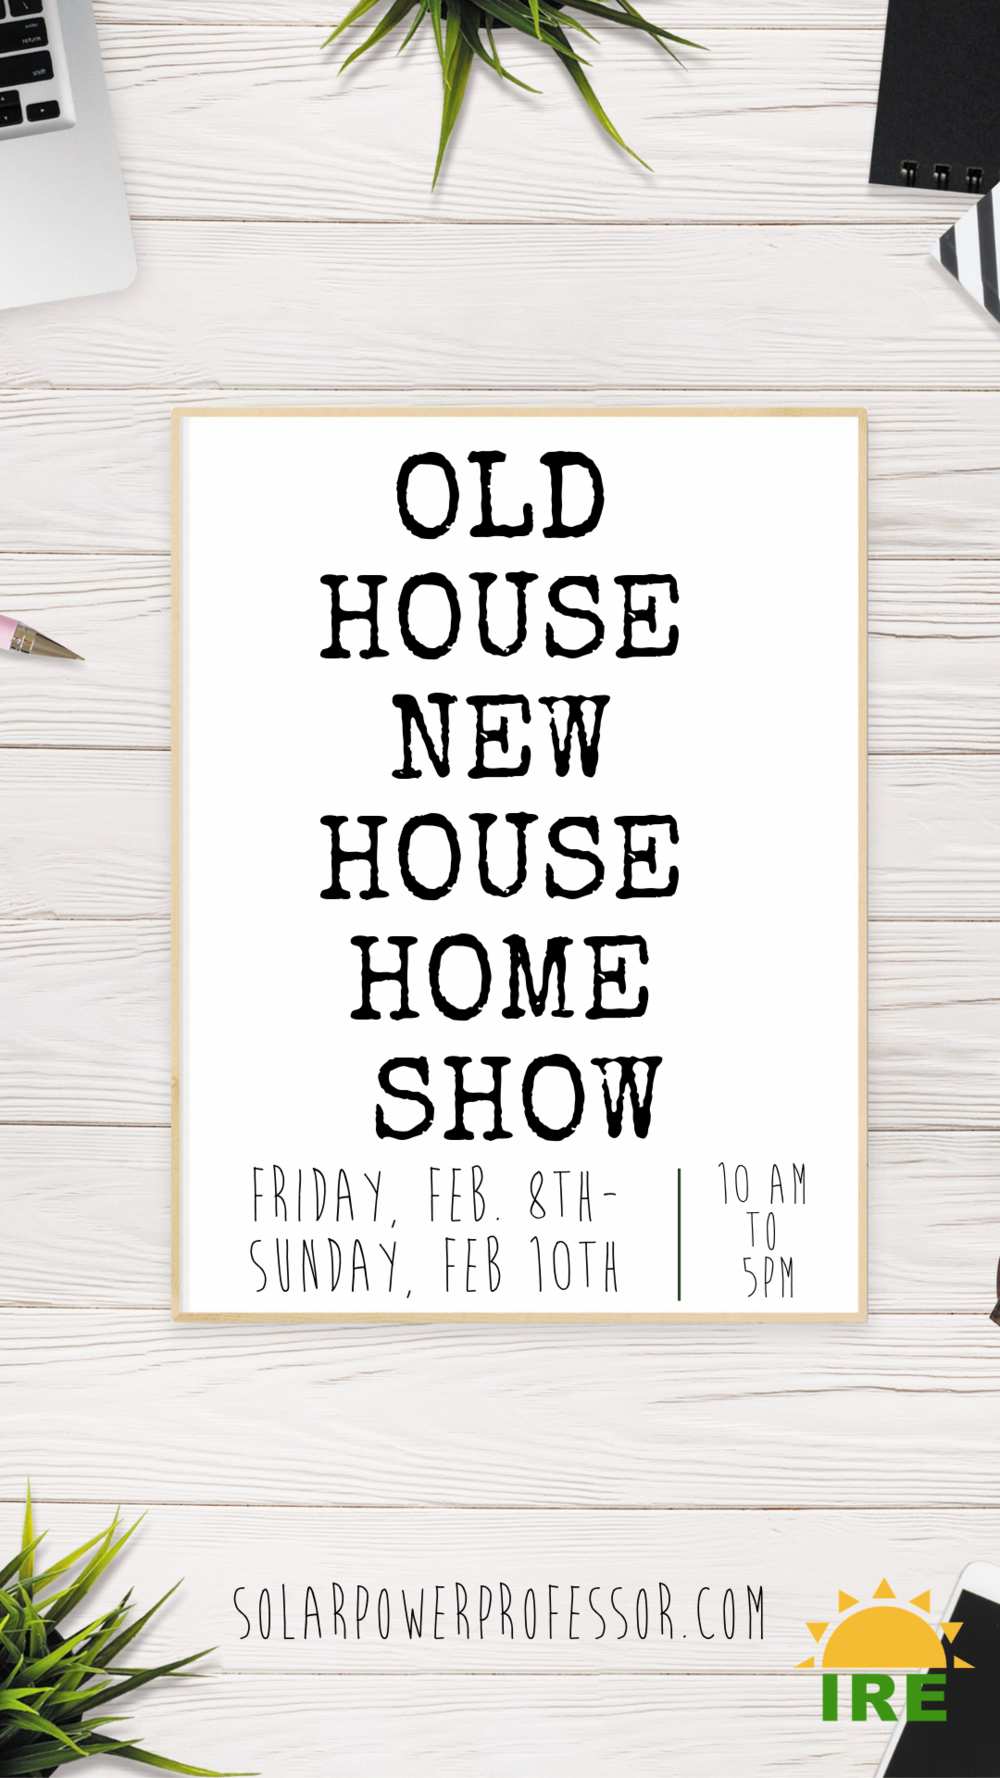 Old House New House Home Show copy 2.png